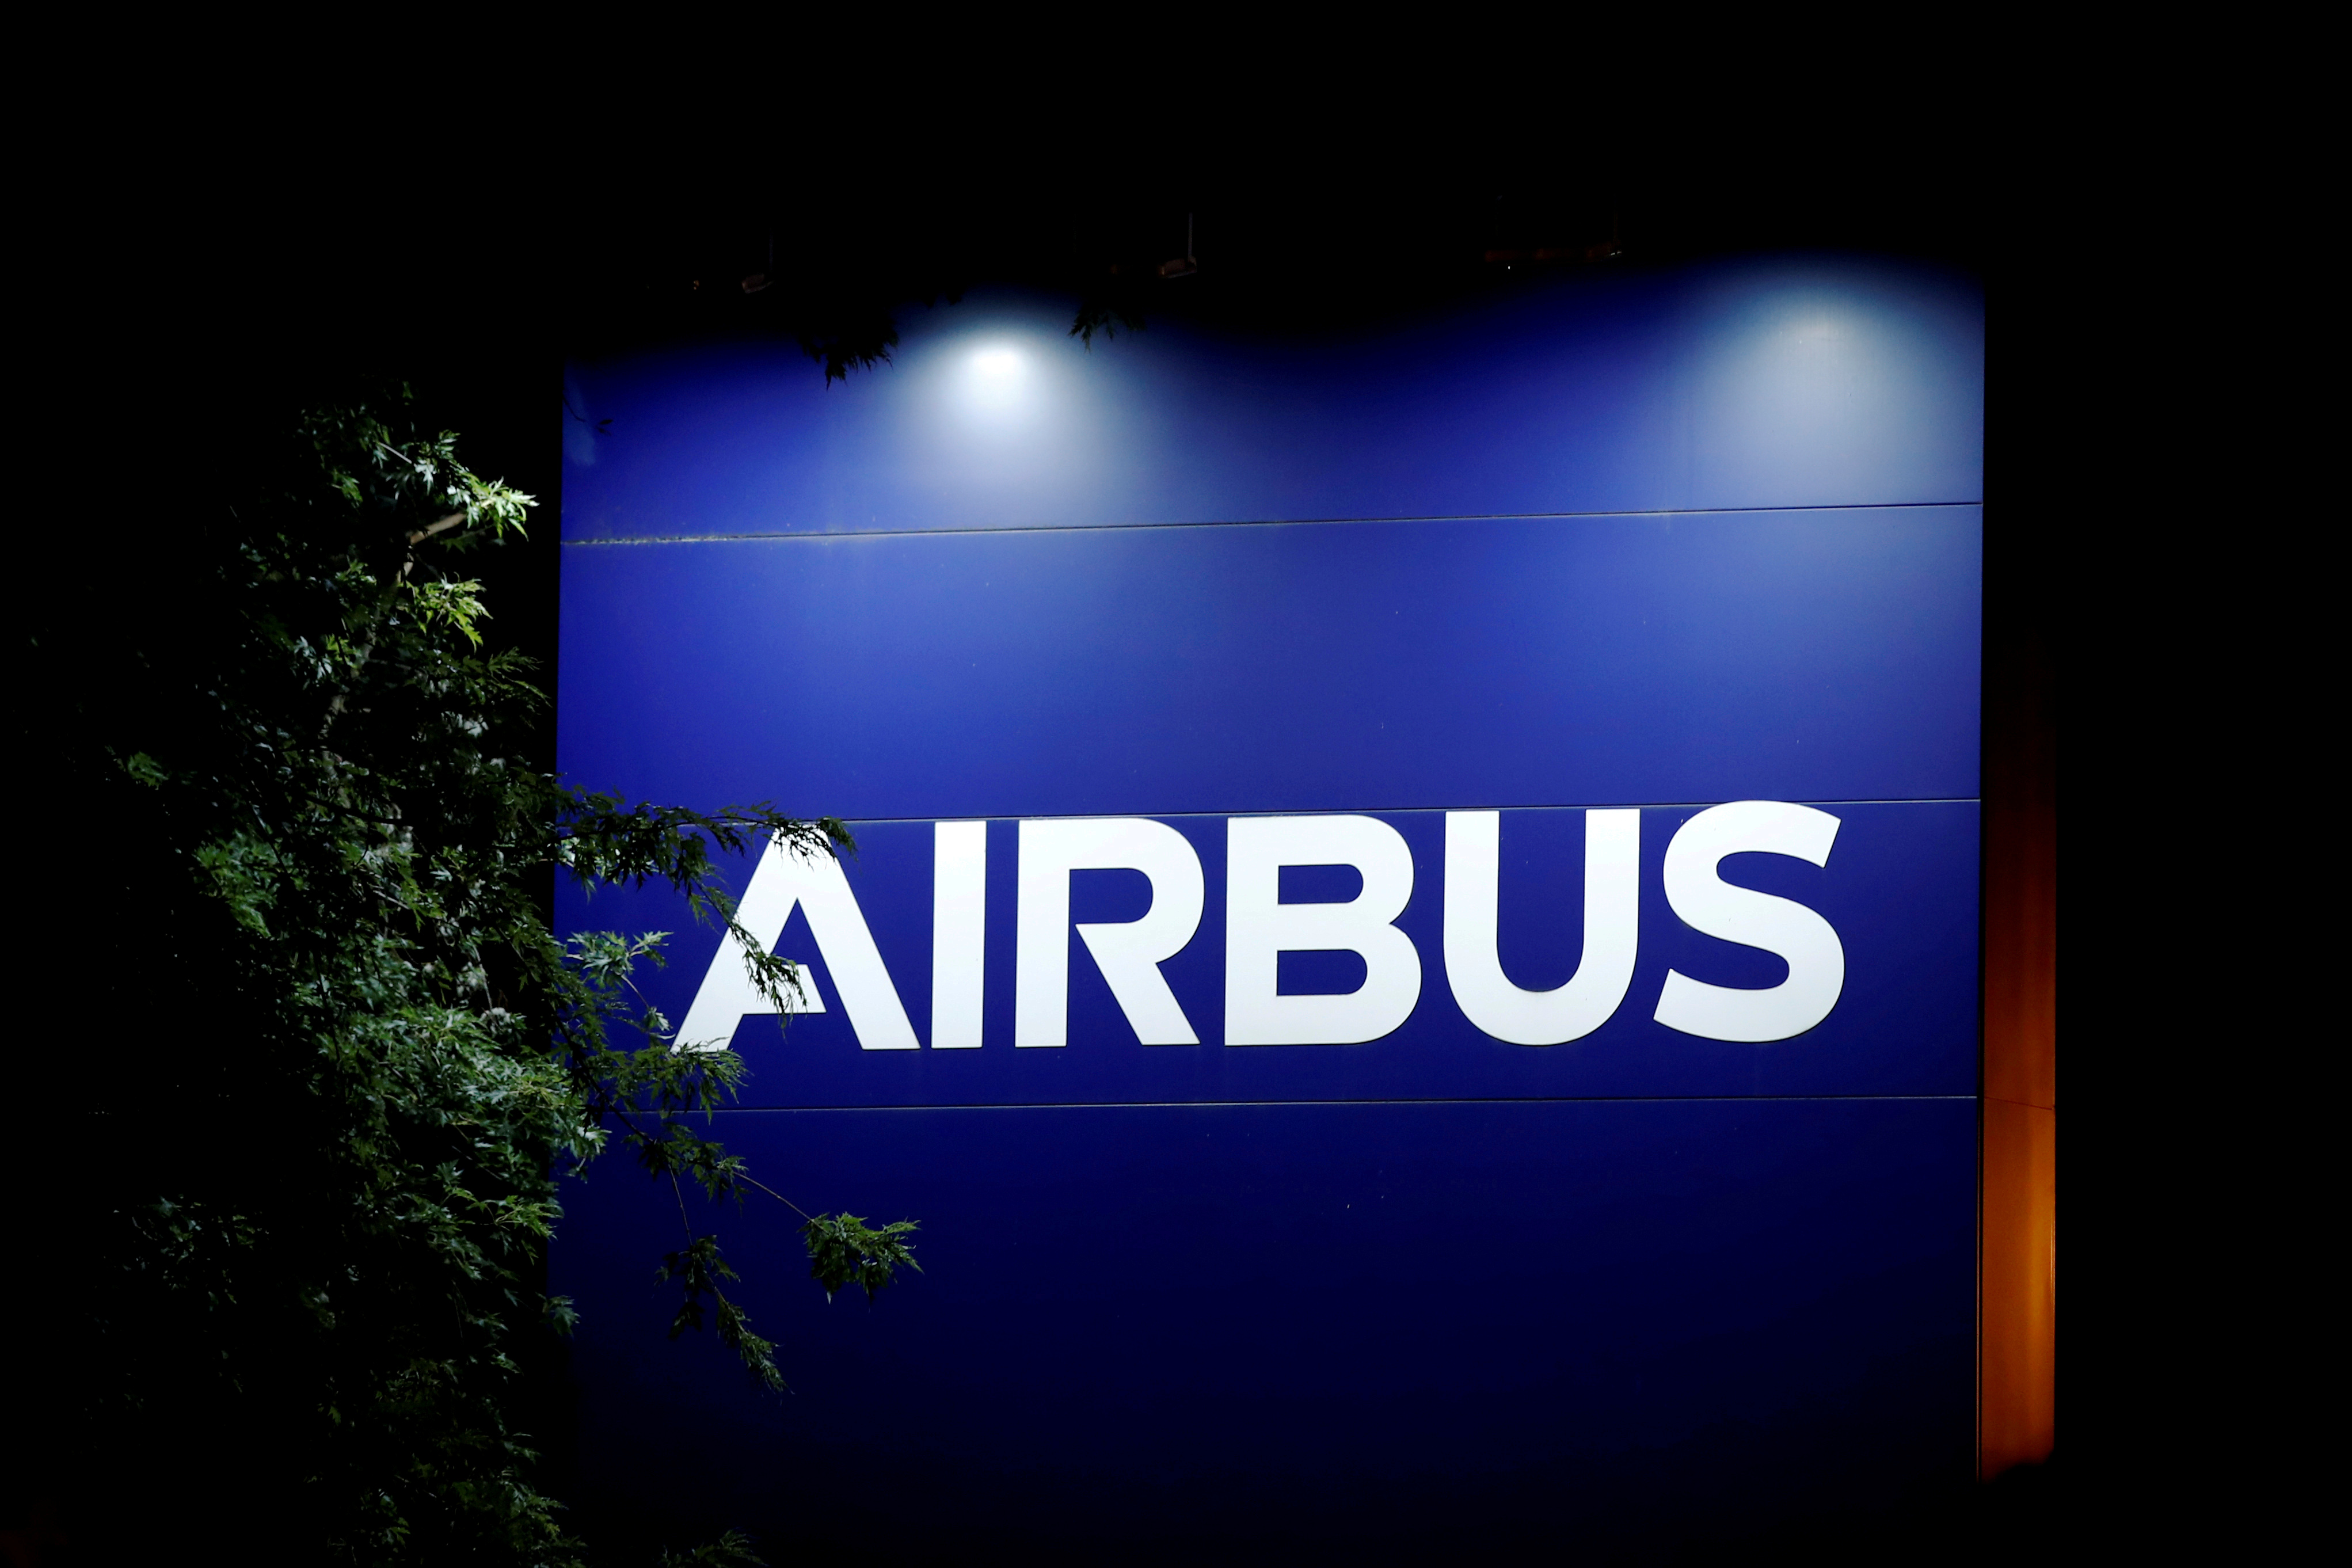 A logo of Airbus is seen at the entrance of its factory in Blagnac near Toulouse, France, July 2, 2020. REUTERS/Benoit Tessier/File Photo